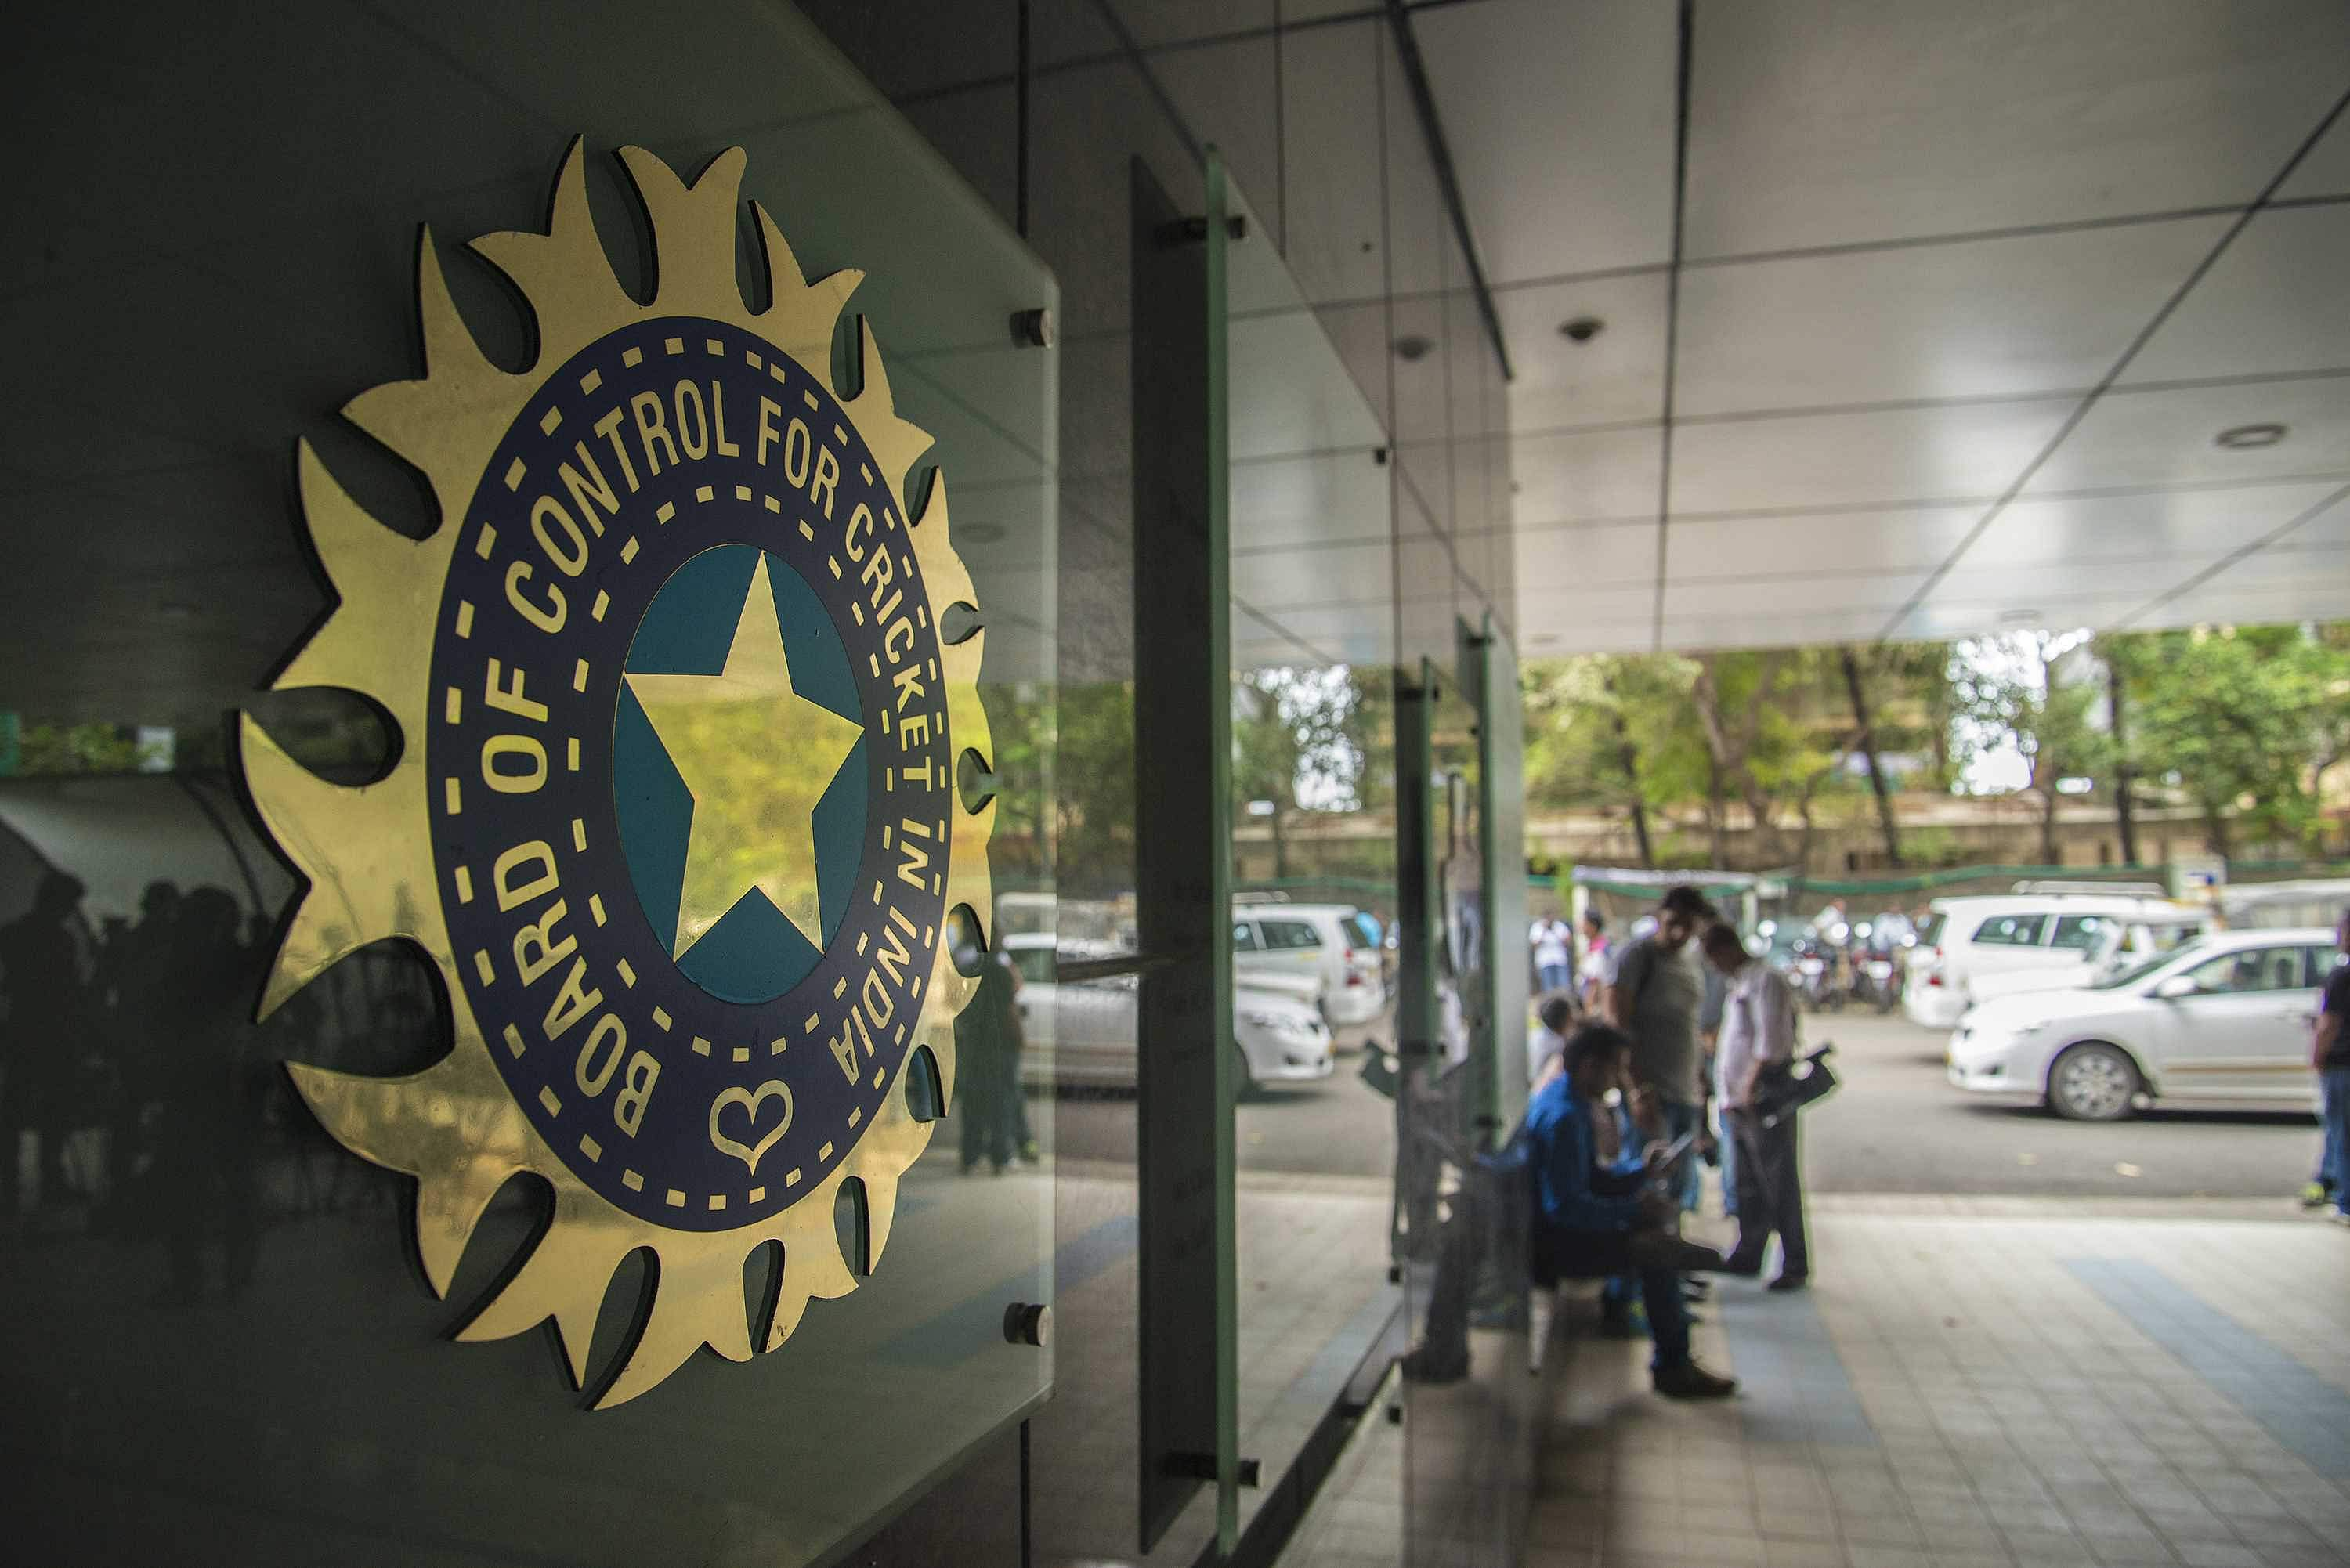 BCCI to take decision on Rajasthan Cricket Association's suspension in Dec 11 Special General Meeting